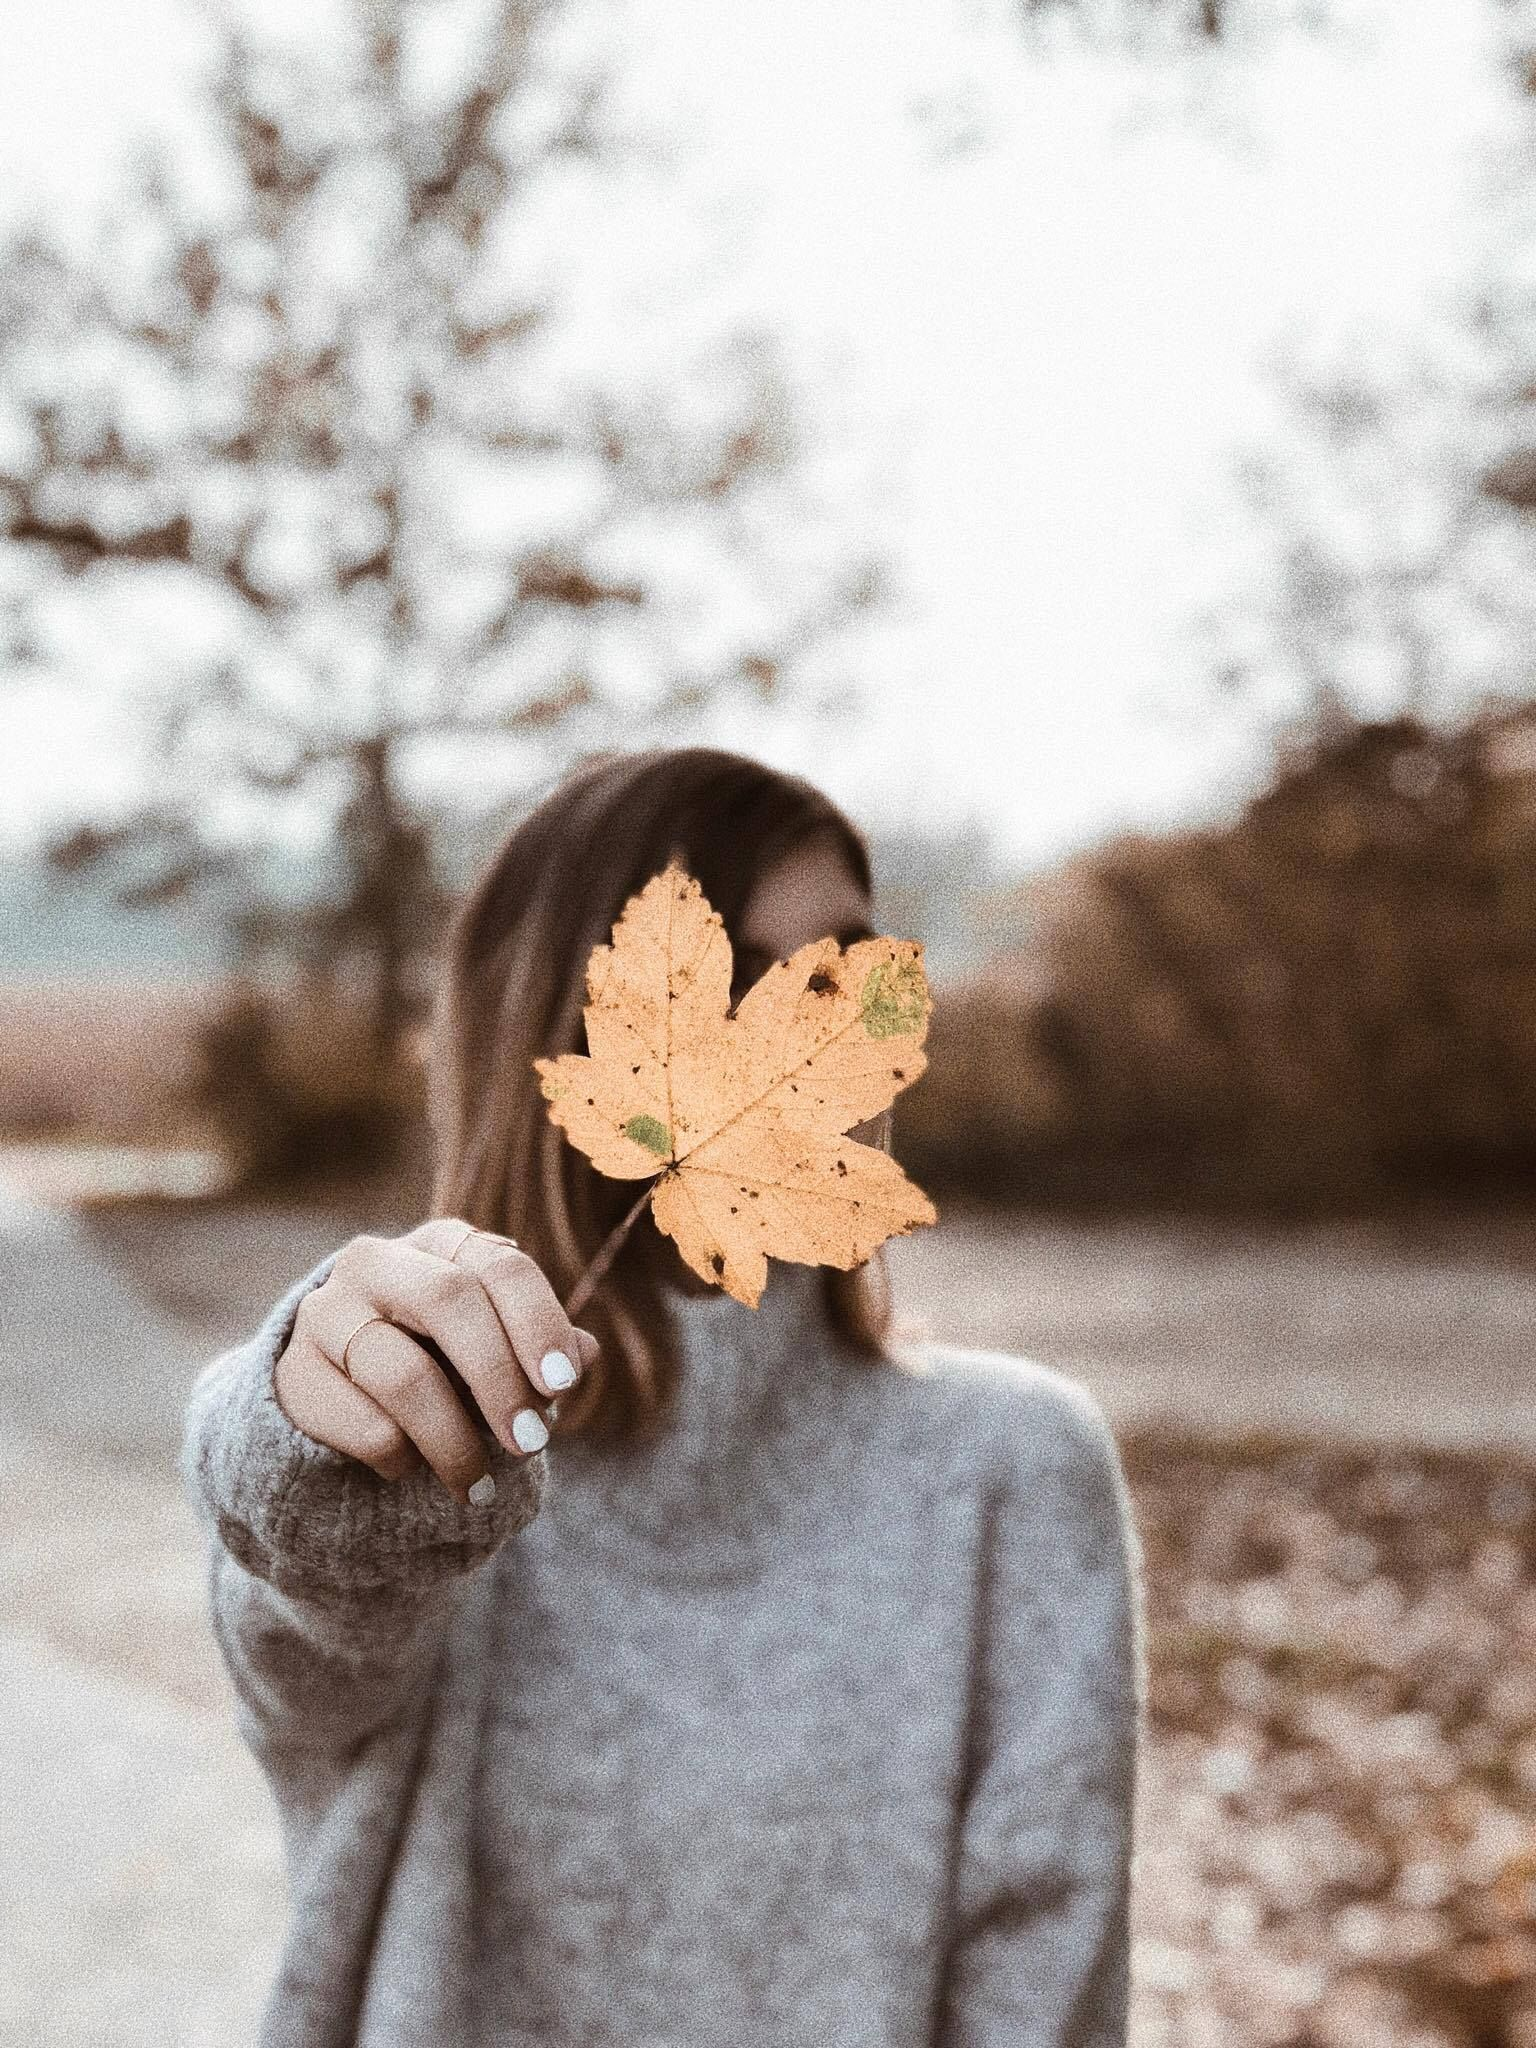 Wallpaper, Phone, Hintergrund, Hintergründe, Handy Hintergrund, Handy Wallpaper, iPhone Wallpaper, Android, herbst, fall, leave, leaves, portrait